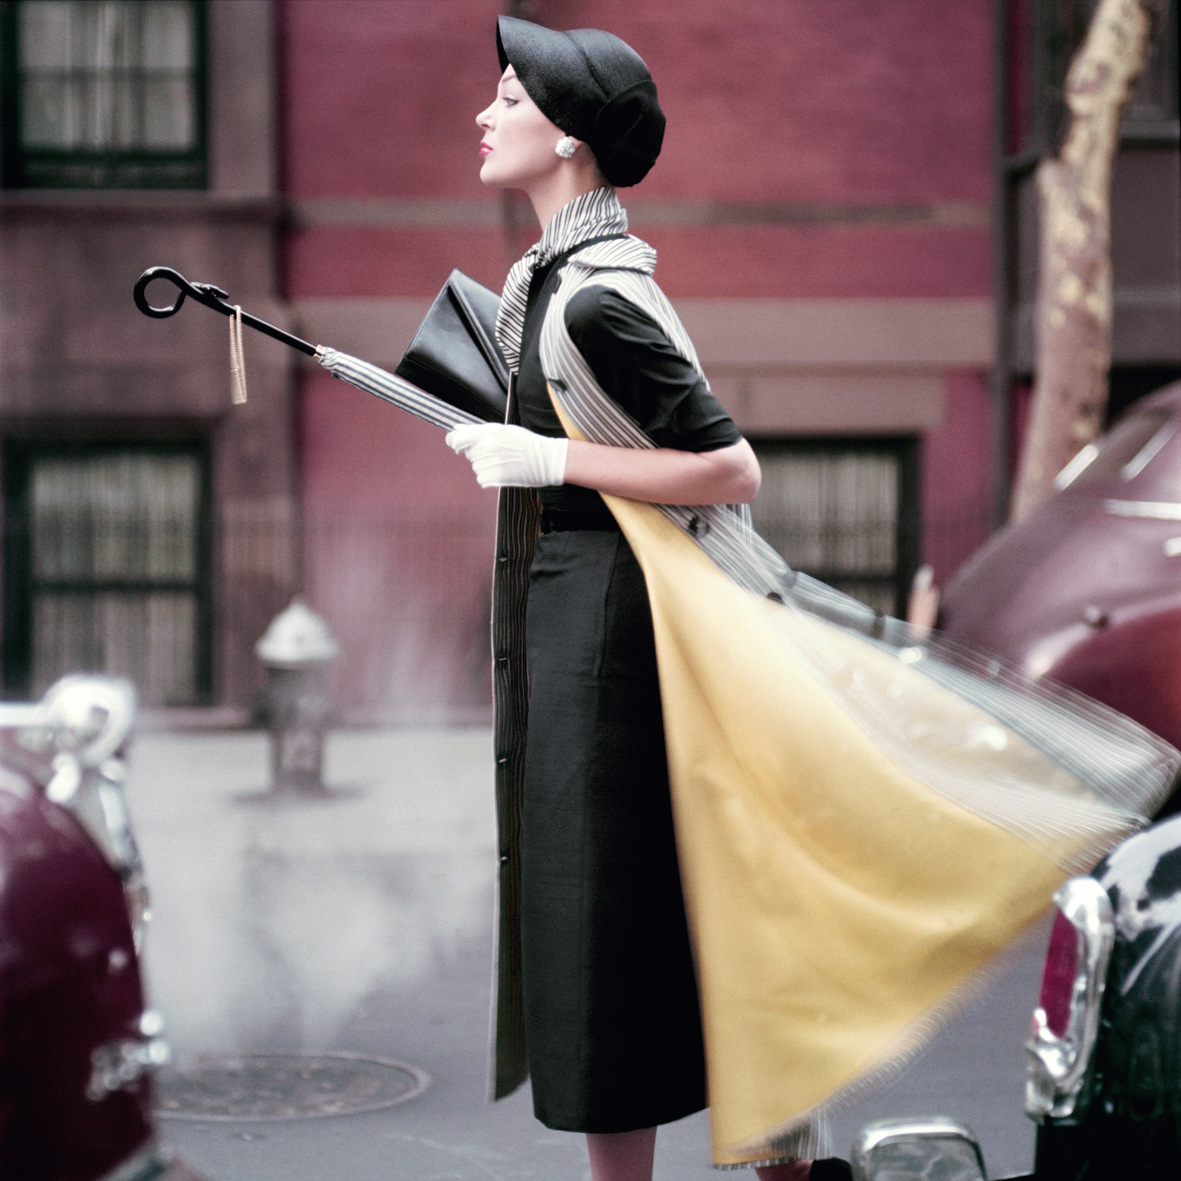 Traffic, Ivy Nicholson, New York City, Vogue Magazine, 1956